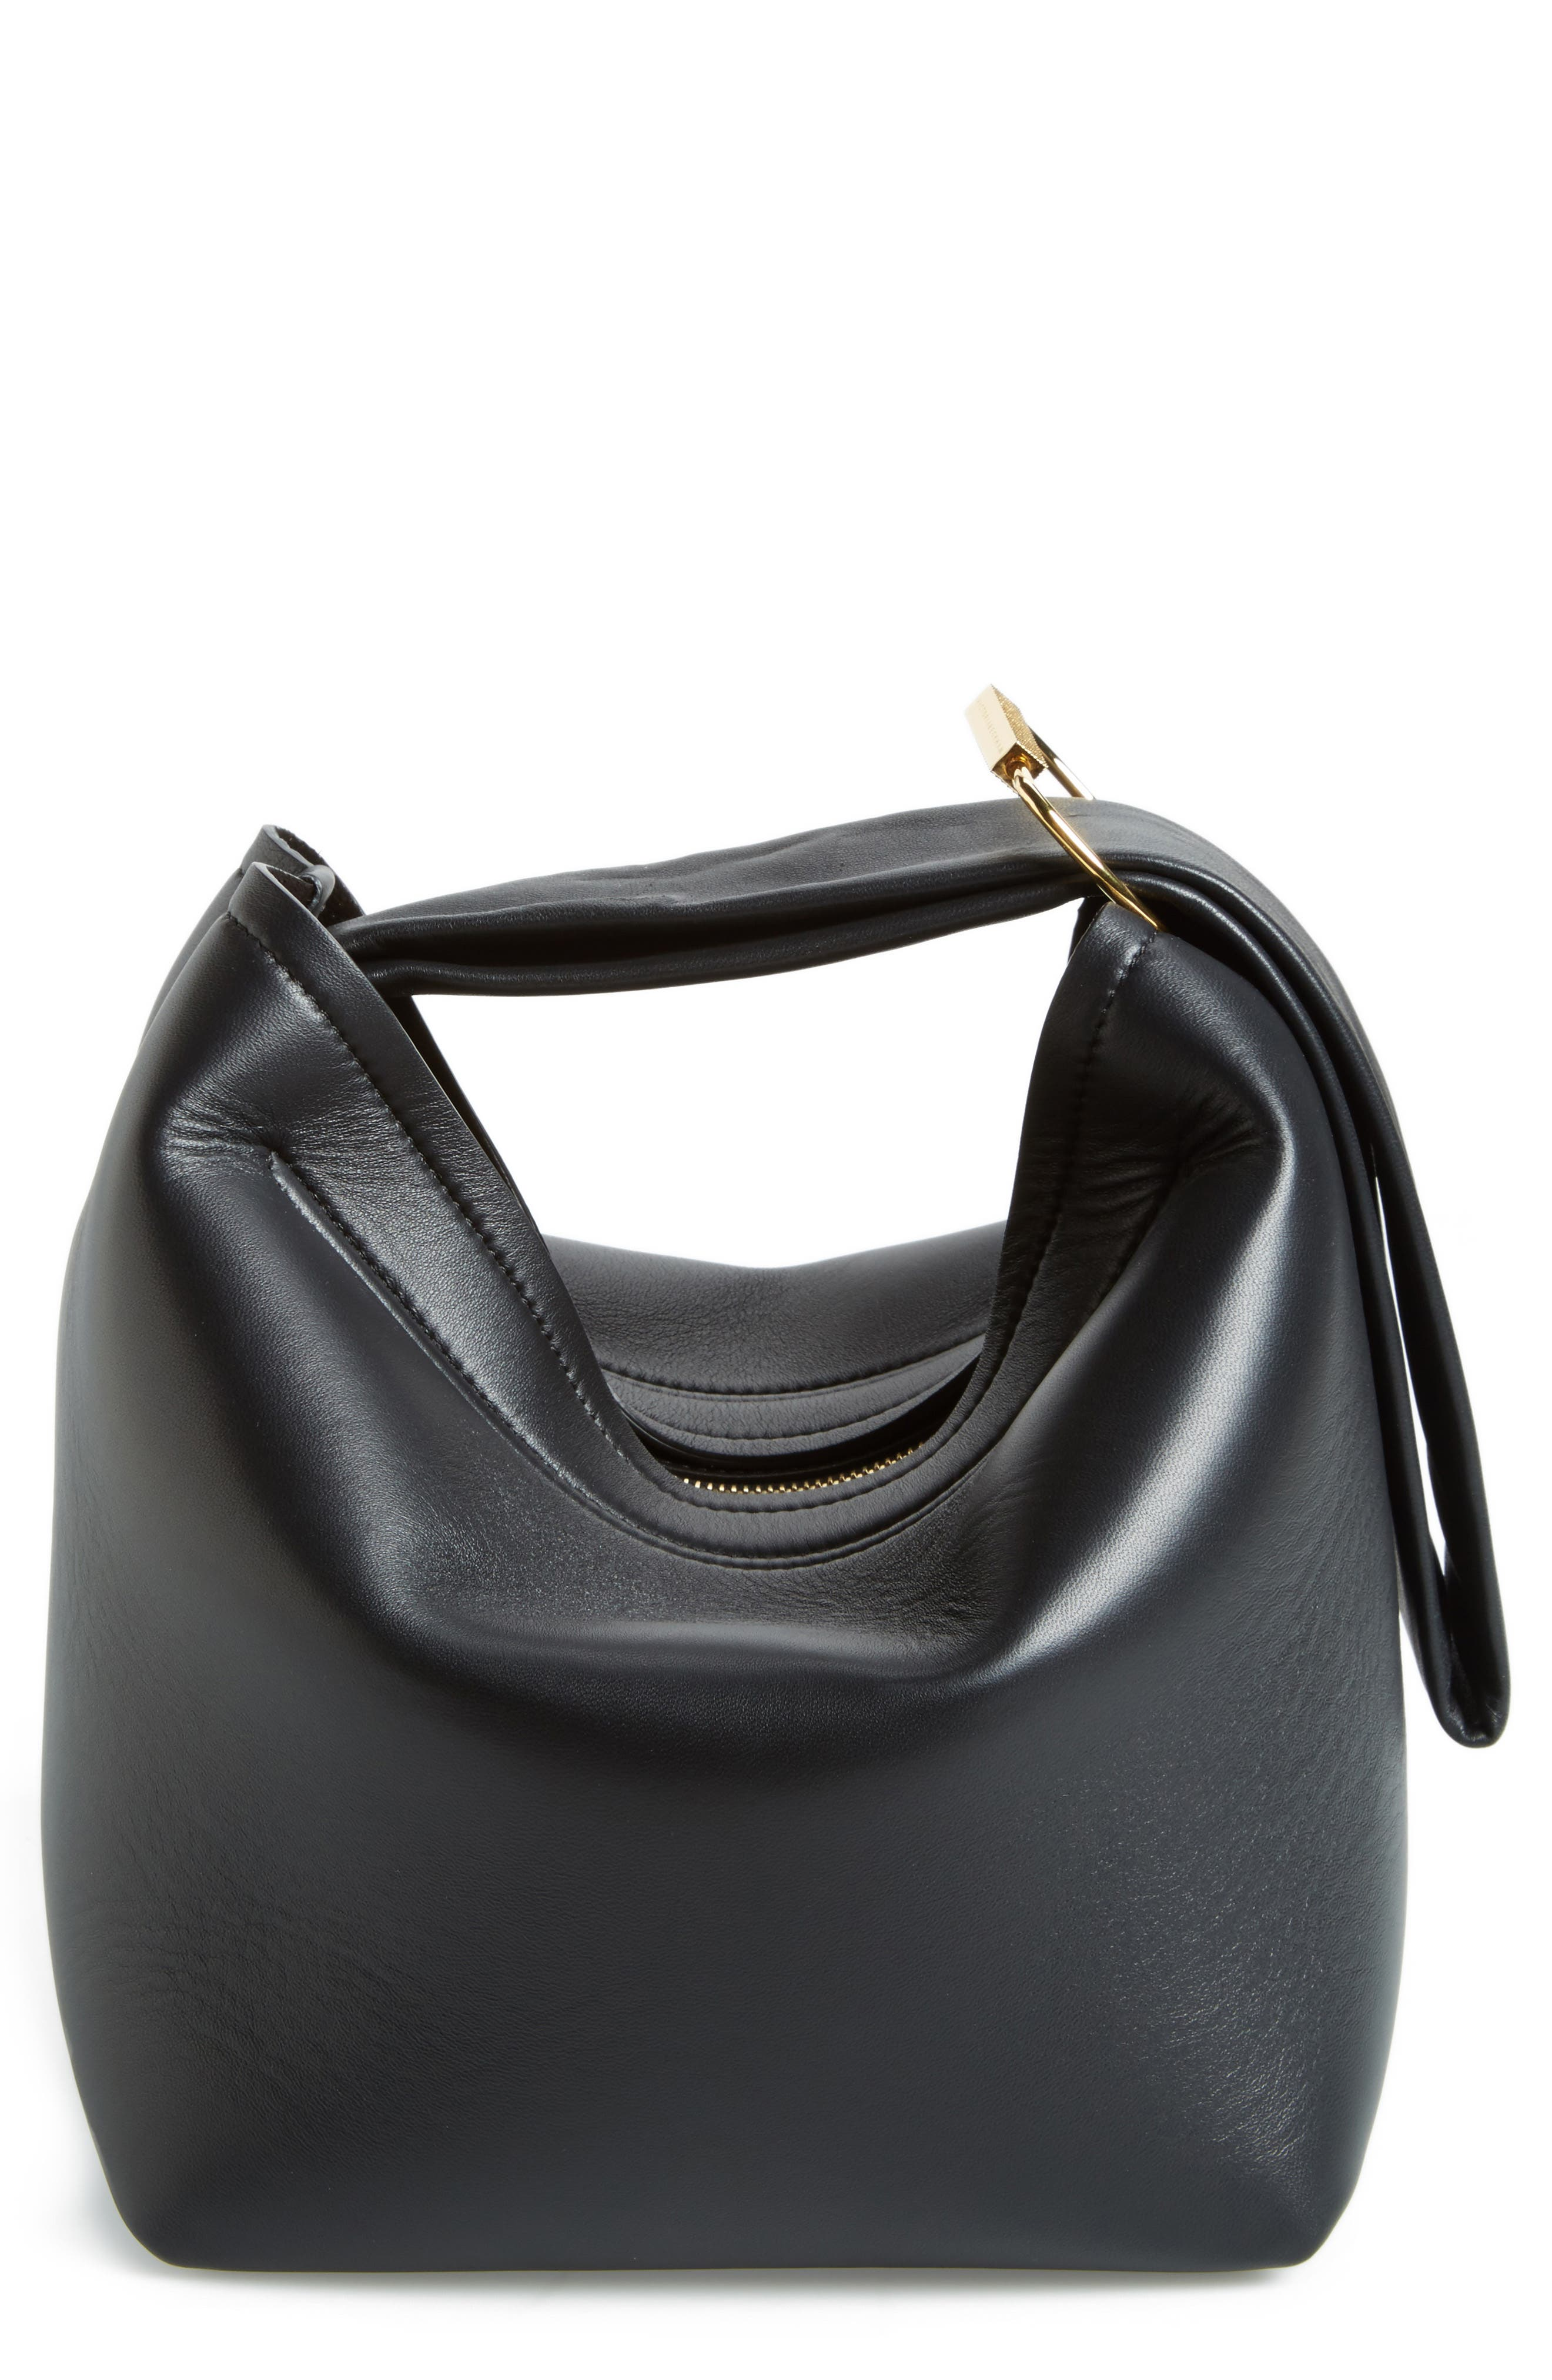 VICTORIA BECKHAM Tissue Pouch Leather Bag